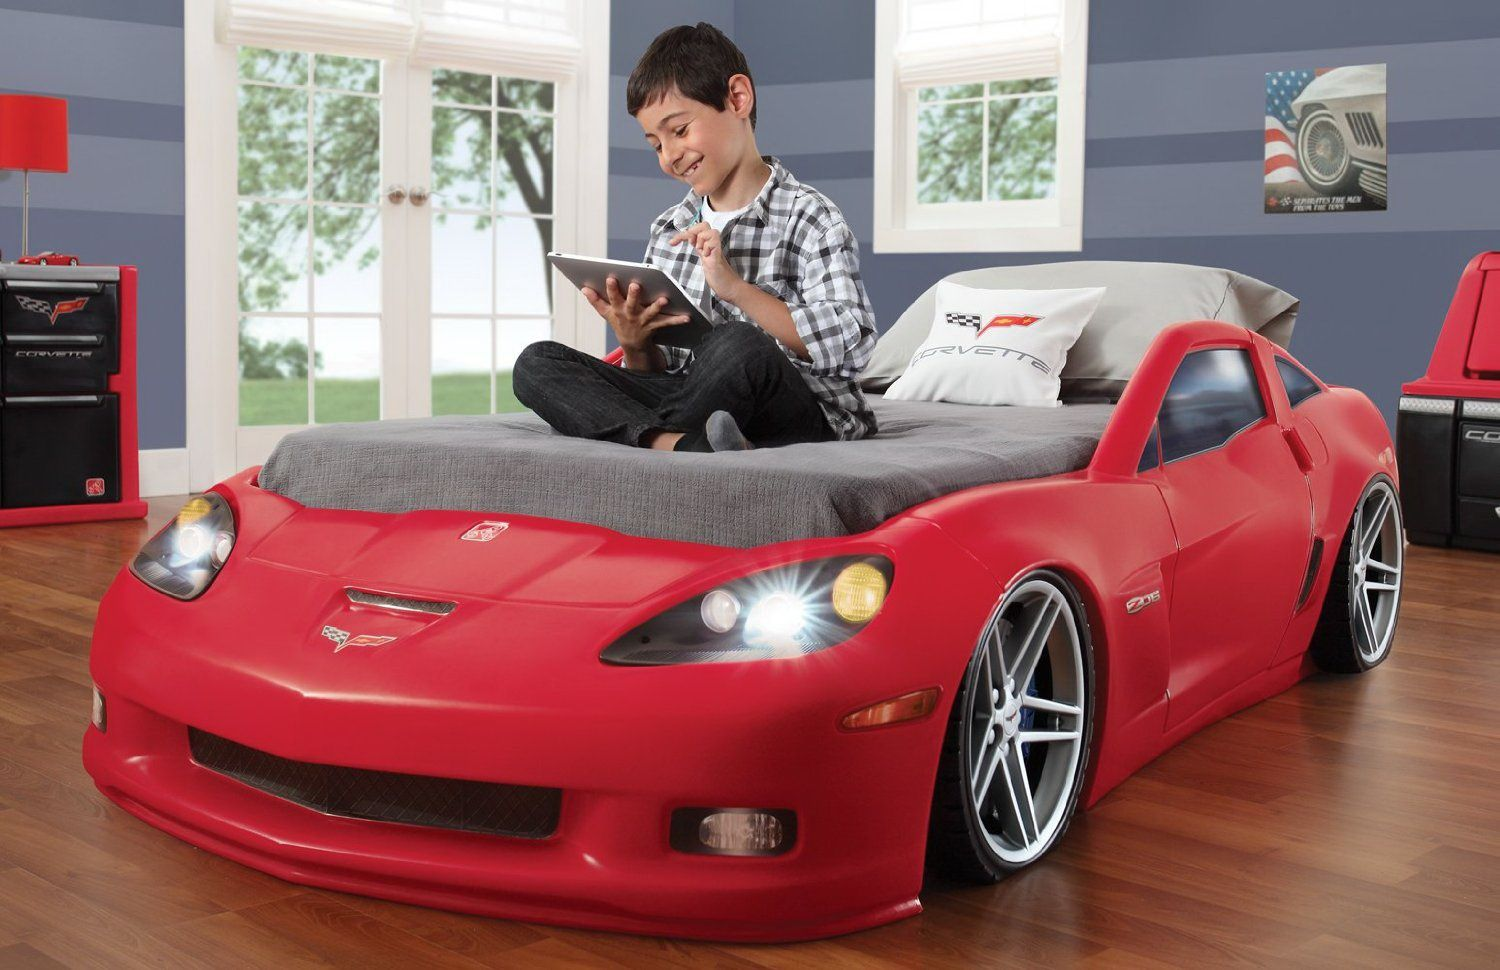 Incredible Boys Bedroom Idea With Awesome Sport Car Platform Bed In ...